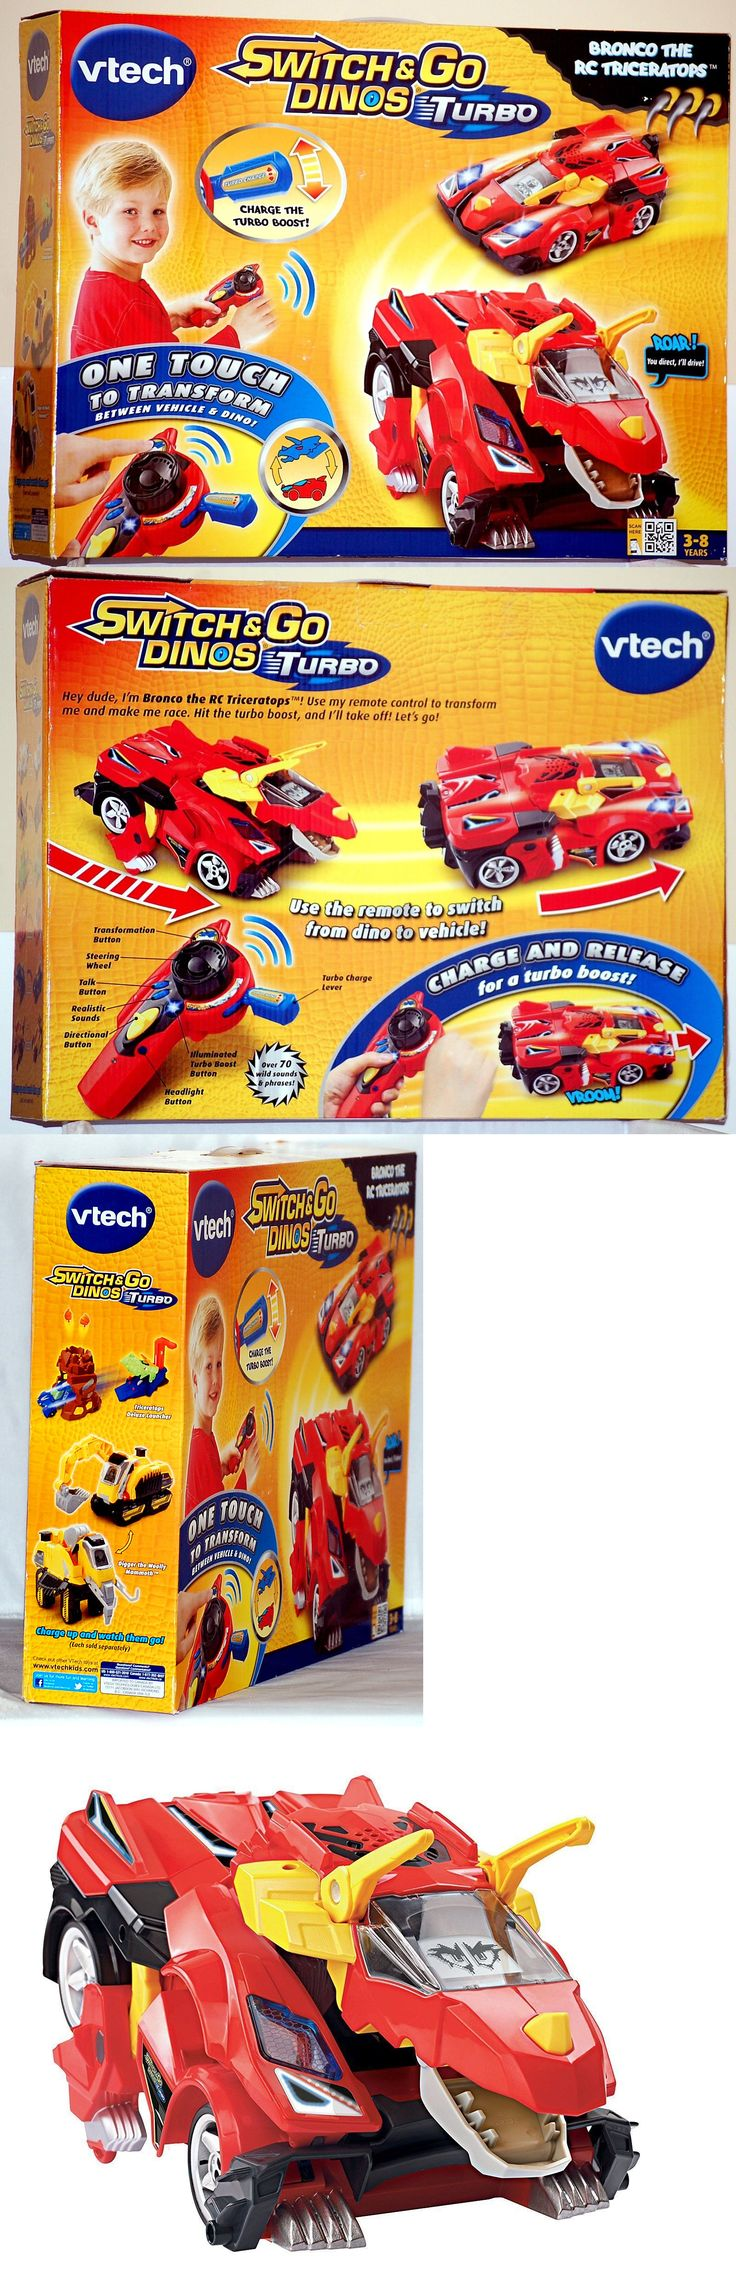 Game Cartridges and Game Books 177916: Vtech Switch And Go Dinos Turbo Bronco The Rc Triceratops Vehicle - Brand New -> BUY IT NOW ONLY: $69.99 on eBay!